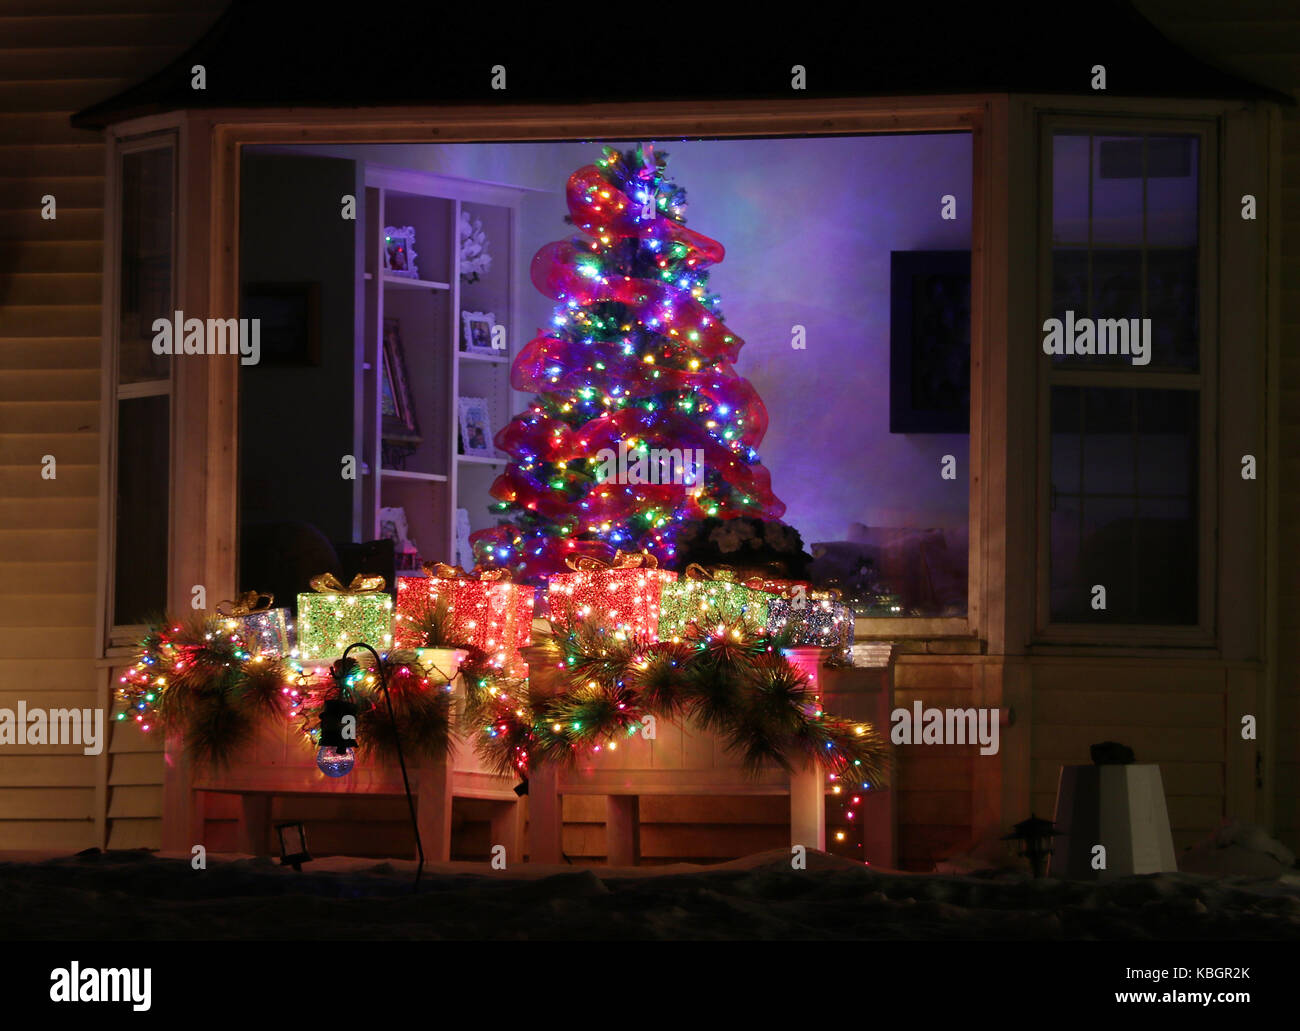 Decorazioni Luminose Per Interni : Finestra decorata con incandescente albero di natale allinterno di